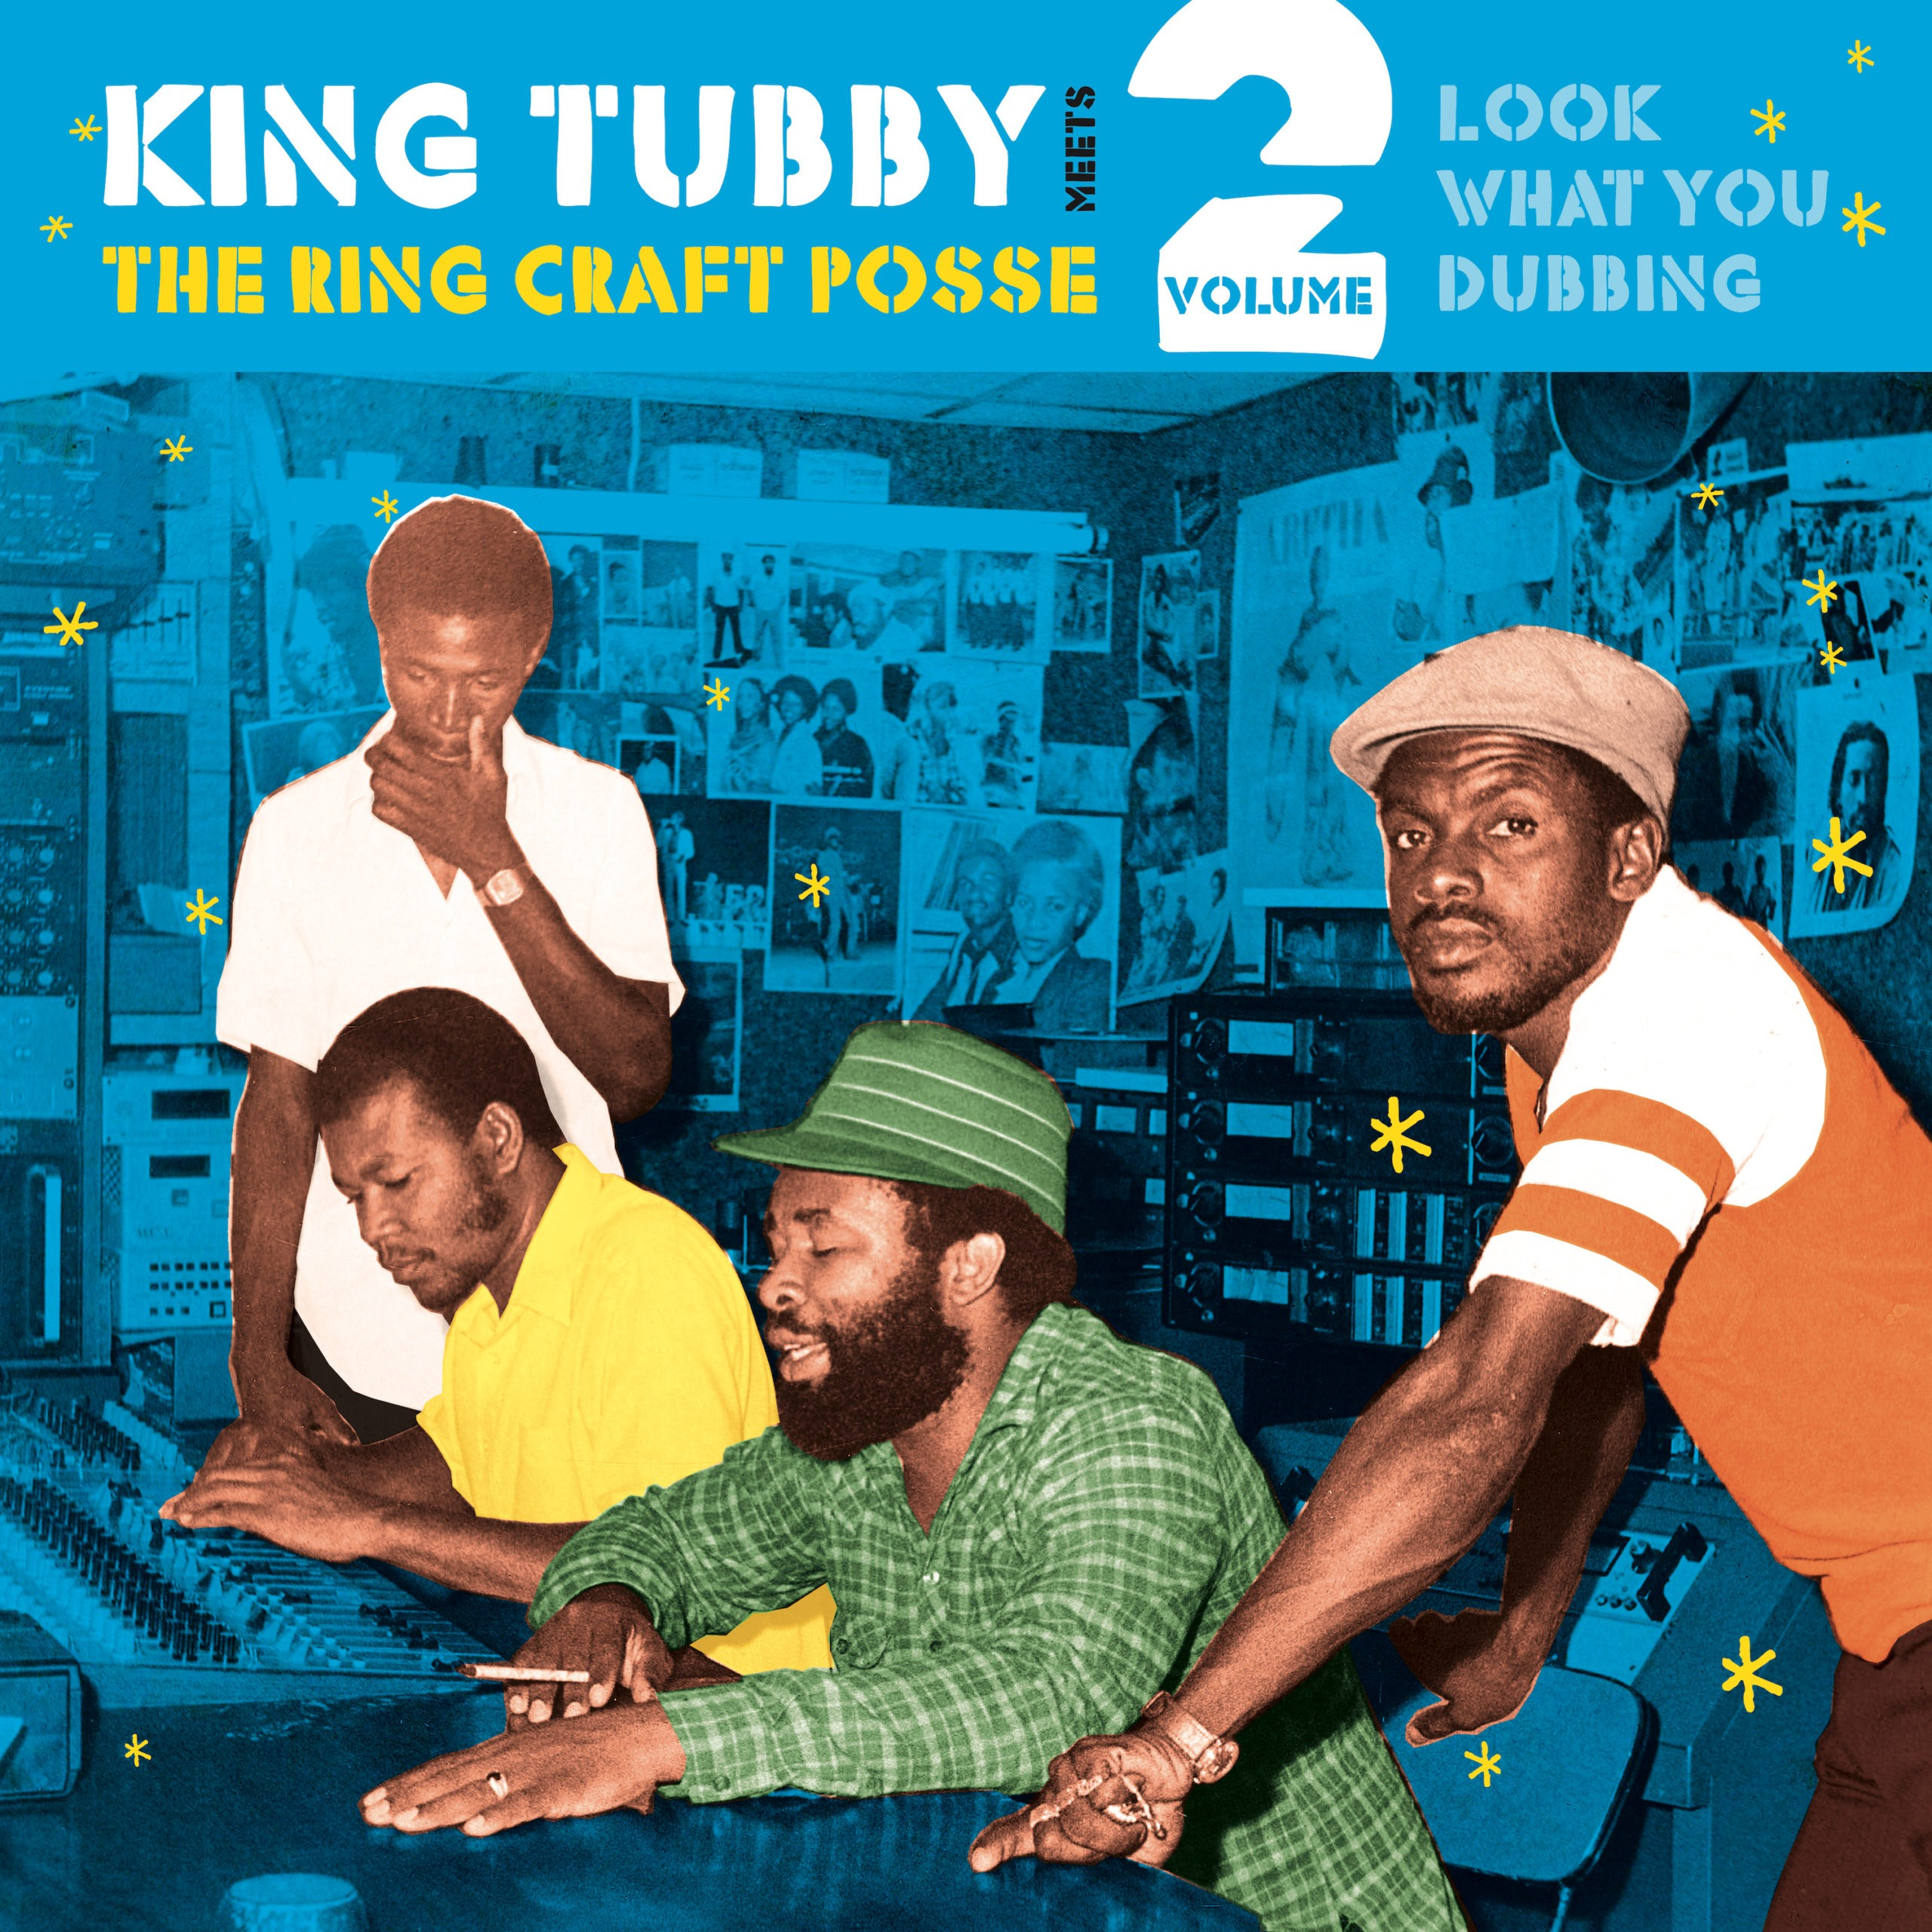 King Tubby : King Tubby Meets The Ring Craft Posse ( Vol 2 Look What You Dubbin ) | LP / 33T  |  Oldies / Classics